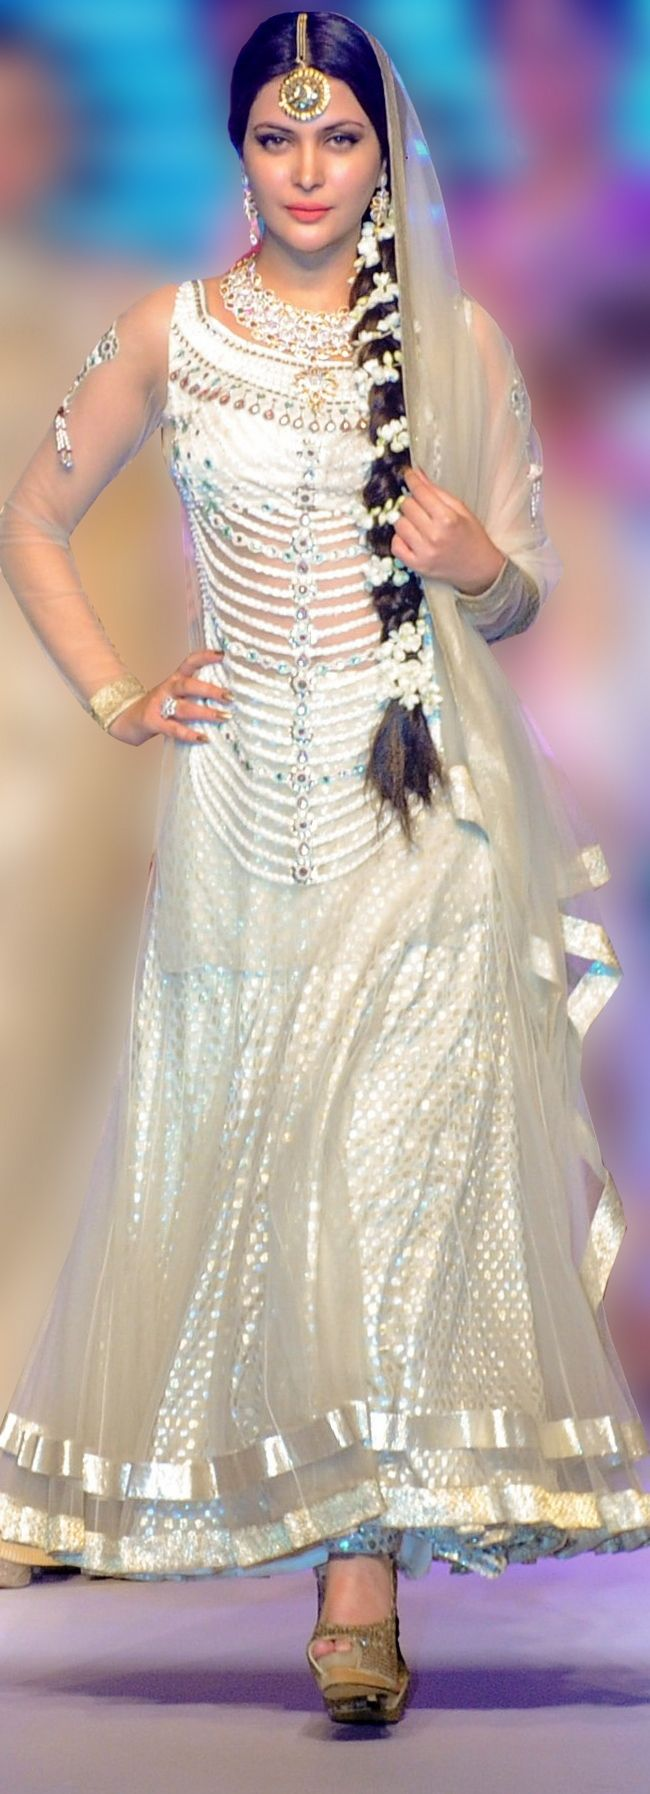 Ankita Shorey wore a long flower braid and a white beaded anarkali at the Indian International Jewellery Week 2014. #Style #Bollywood #Fashion #Beauty #IIJW